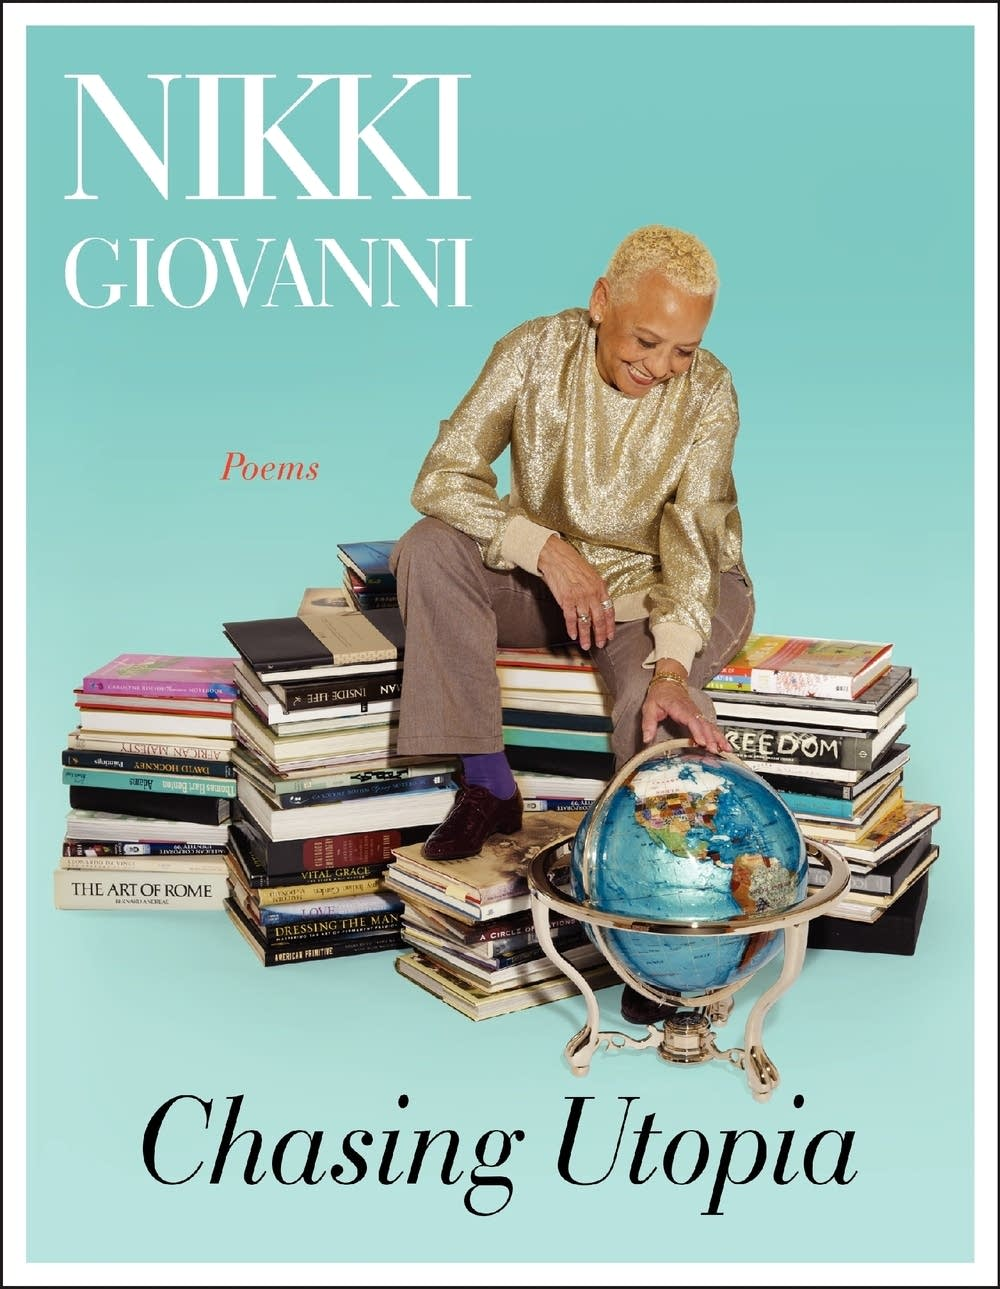 utopia essays ordos a failed utopia photographed by raphael  poet nikki giovanni on chasing utopia the art of aging chasing utopia by nikki giovanni